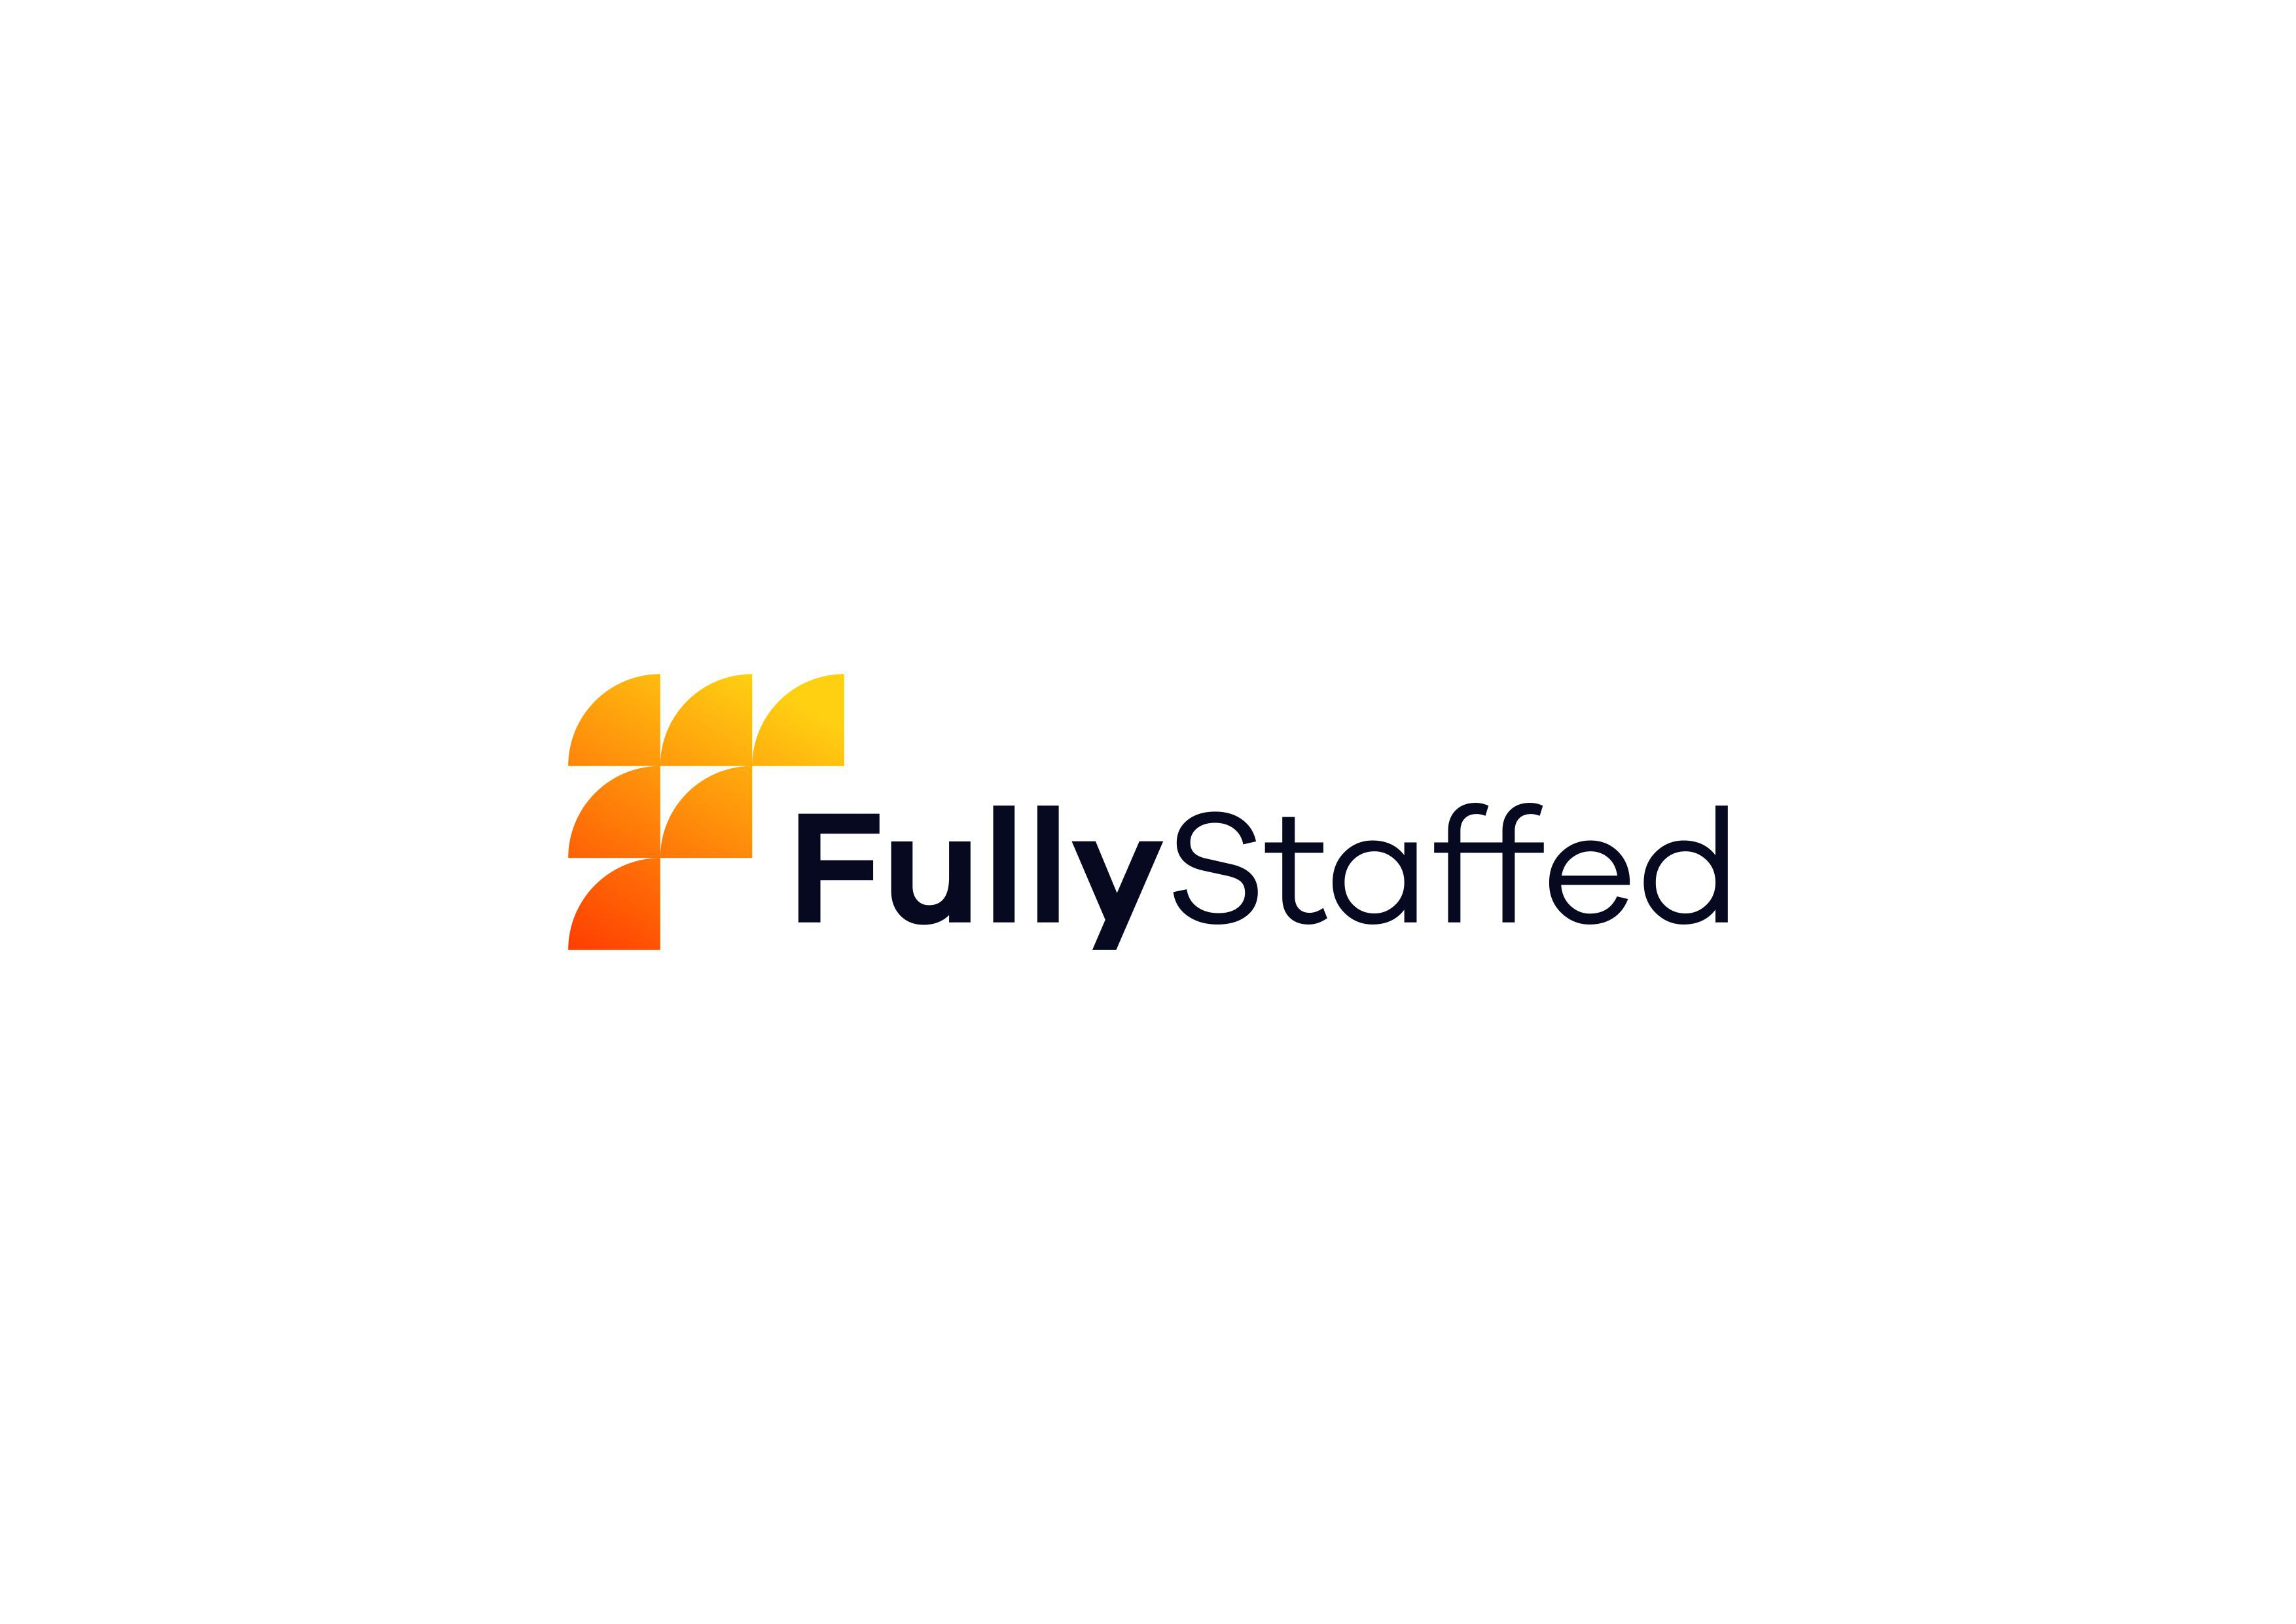 Bold, graphic logo needed for an IT staffing agency